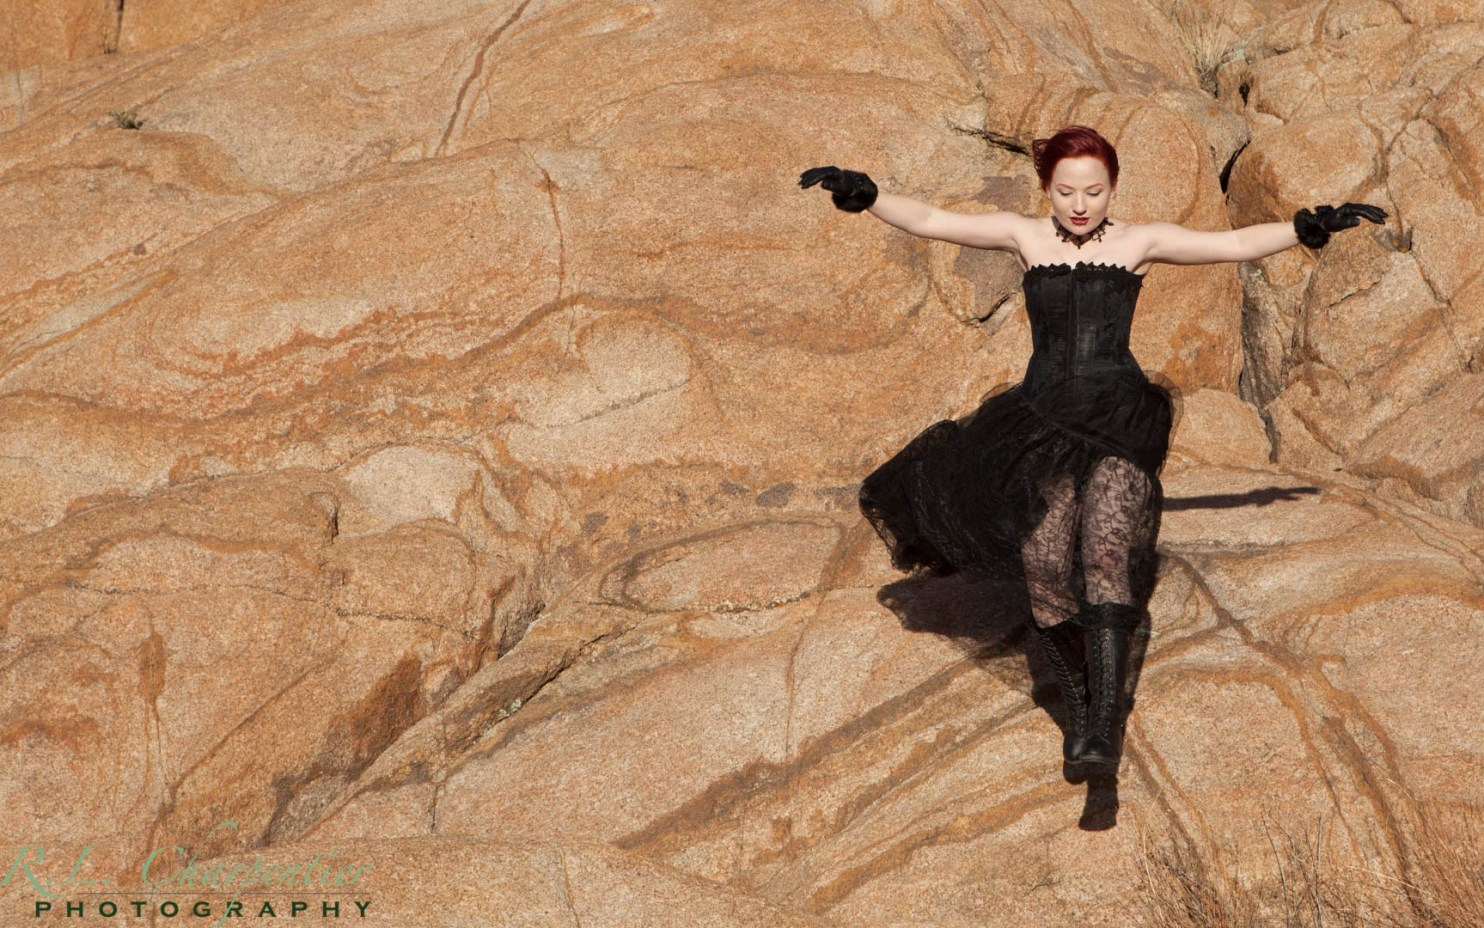 Outdoor Portrait Photography in the Granite Dells by Richard Charpentier